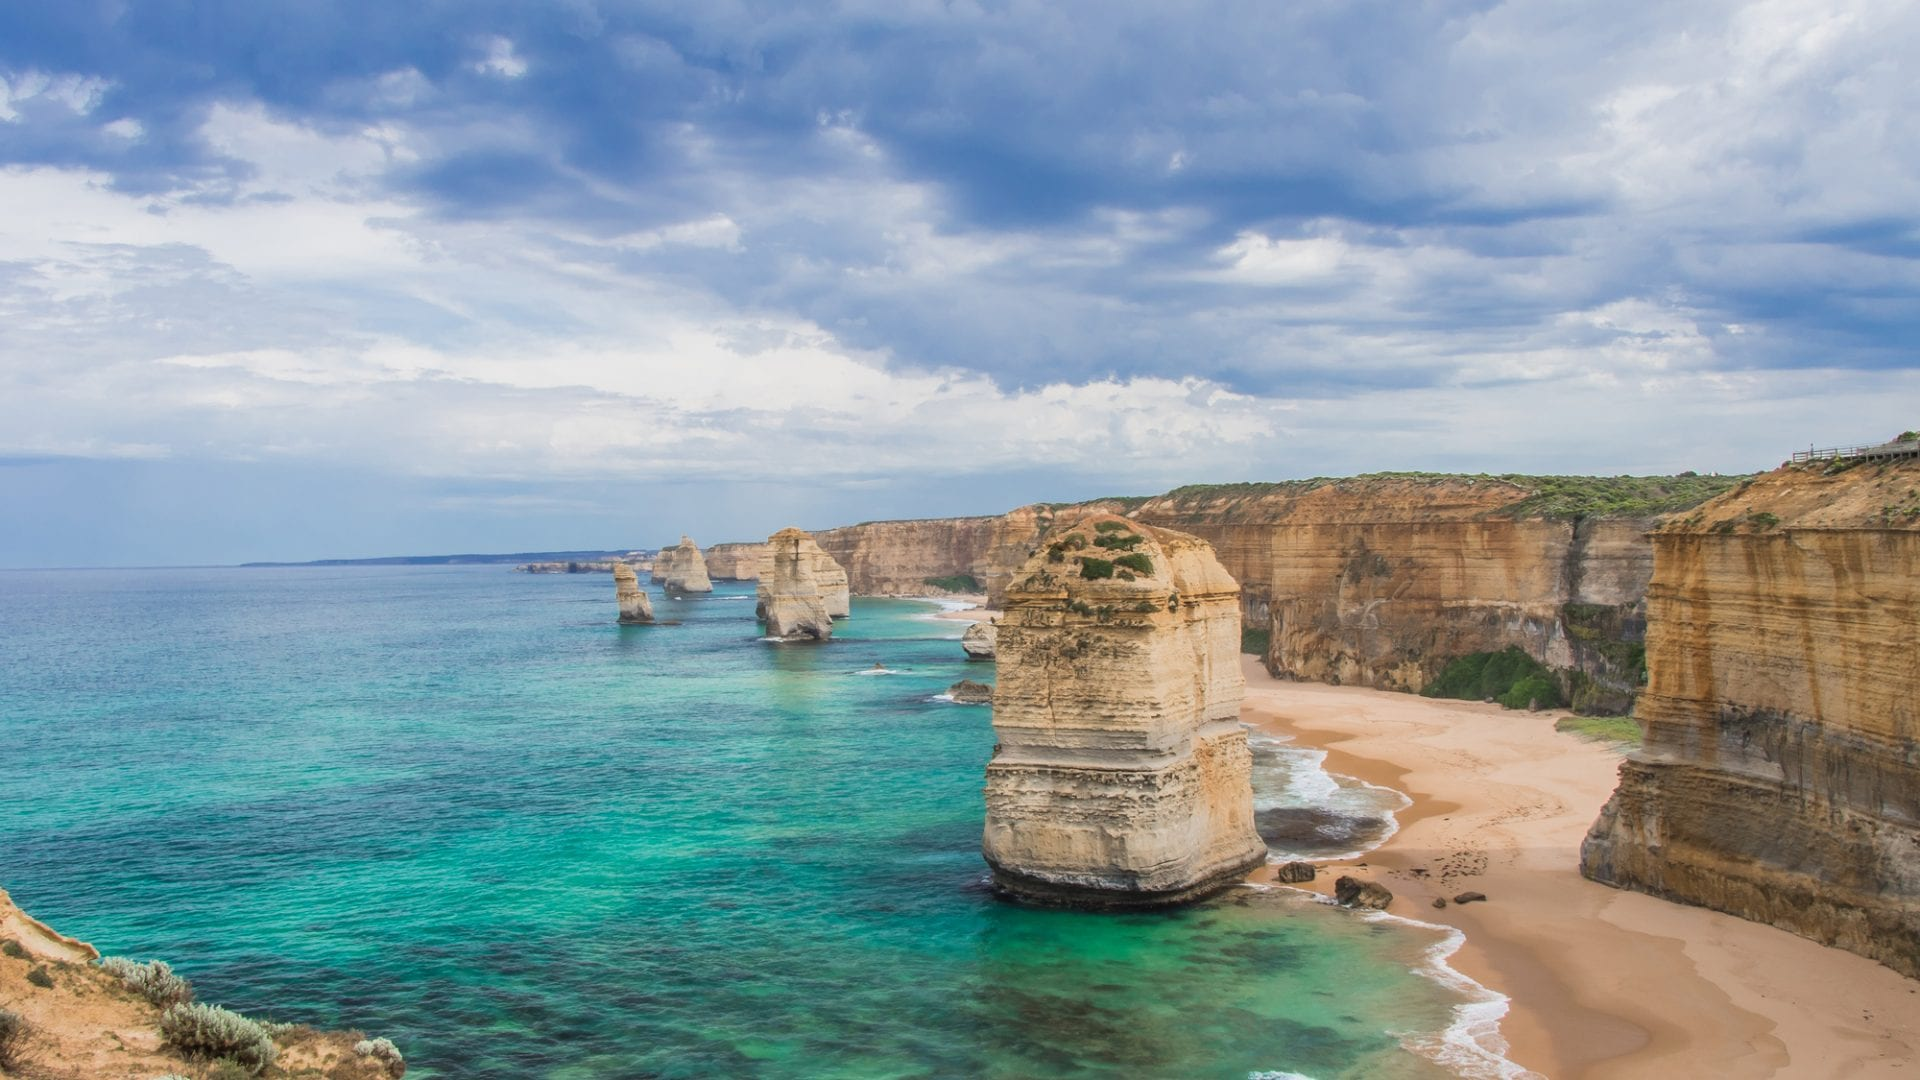 the most famous of Great Ocean Road attractions, the 12 Apostles in Port Campbell National Park